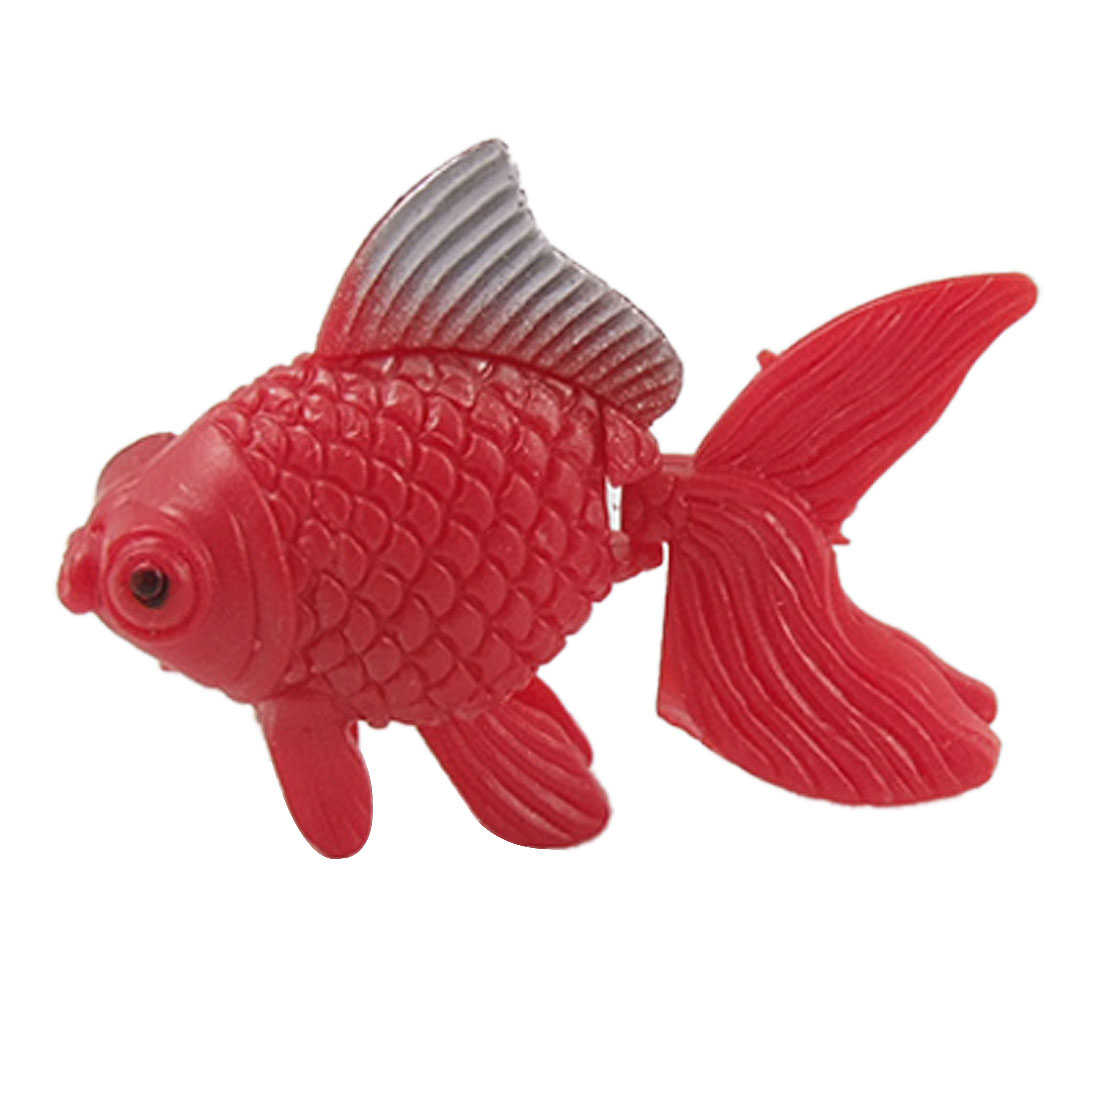 4 Pcs Plastic Red Manmade Goldfish Ornament for Aquarium